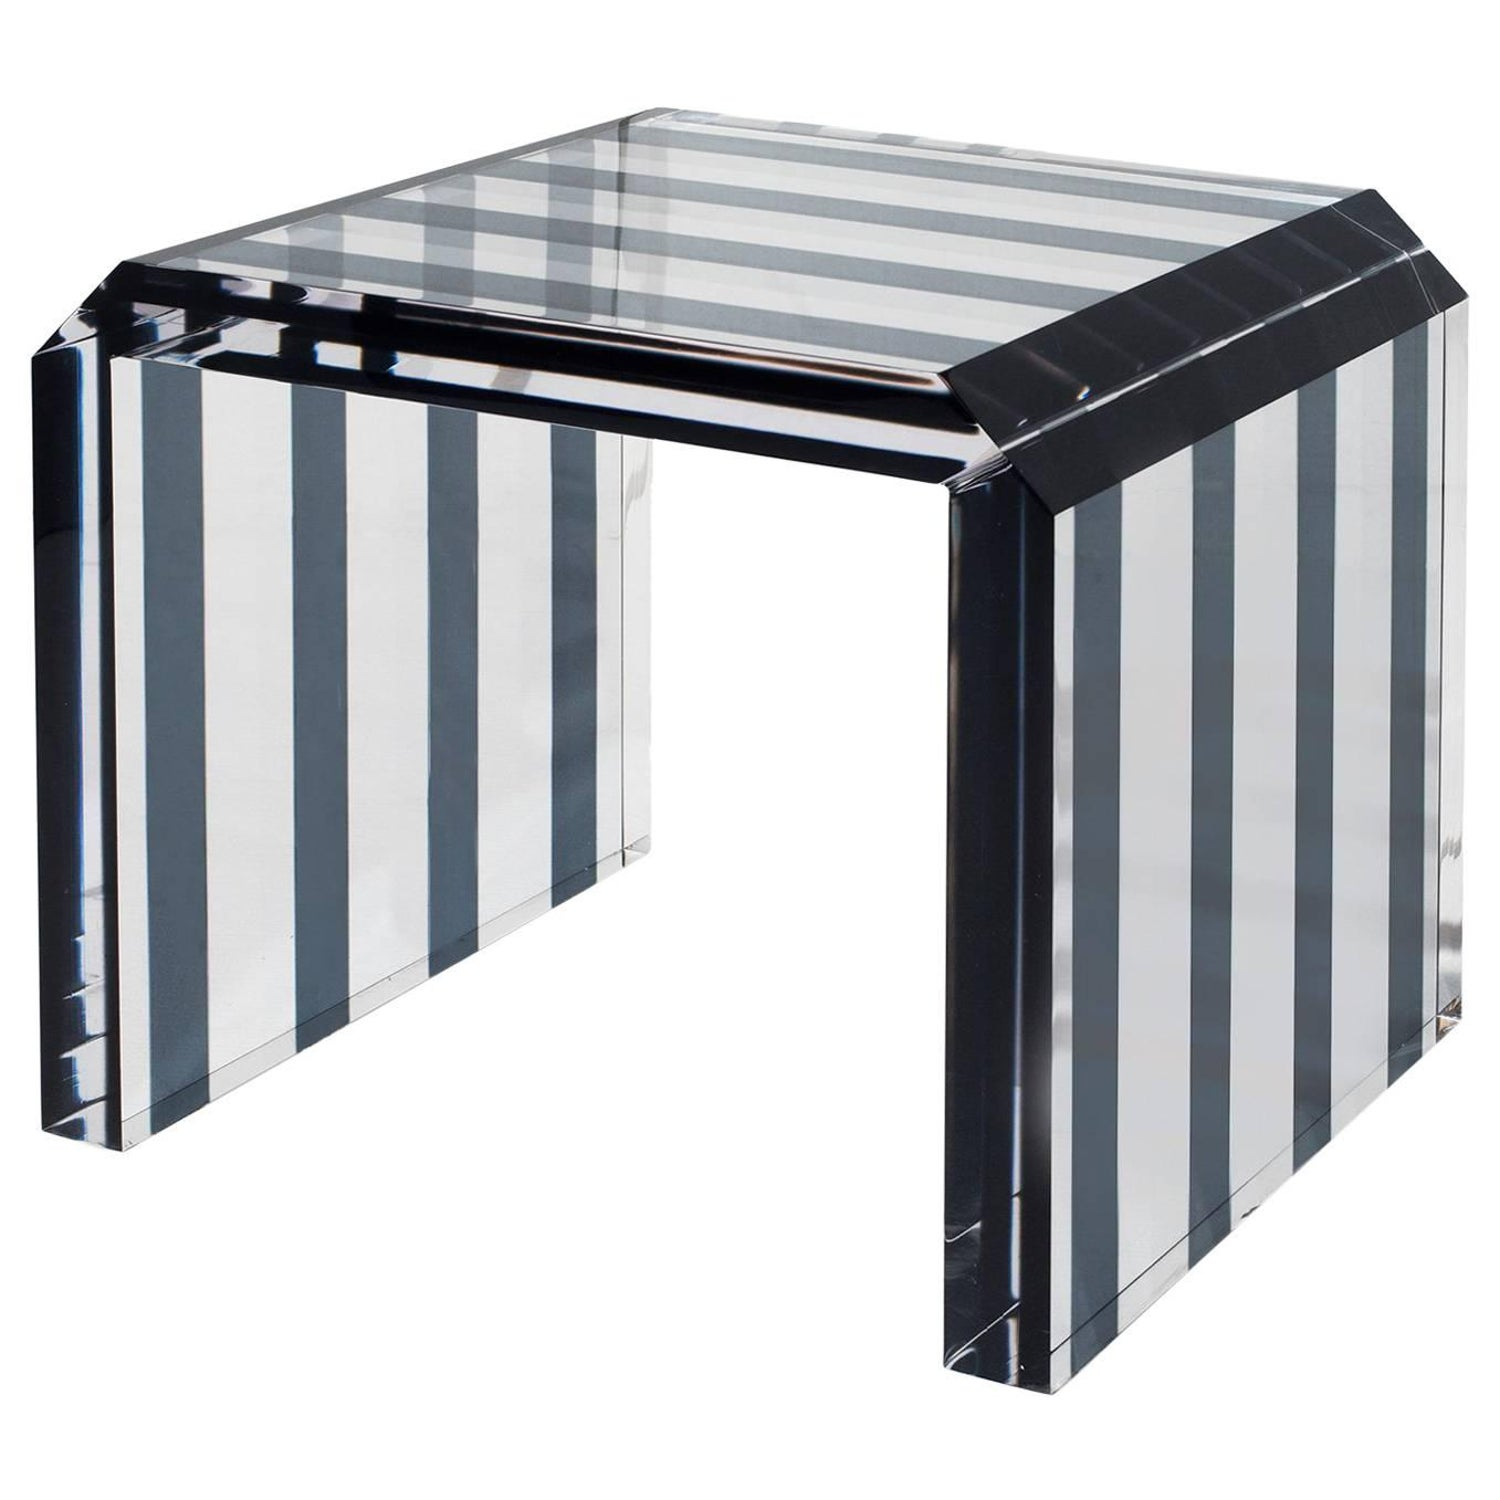 Plexiglass Tables 107 For Sale at 1stdibs